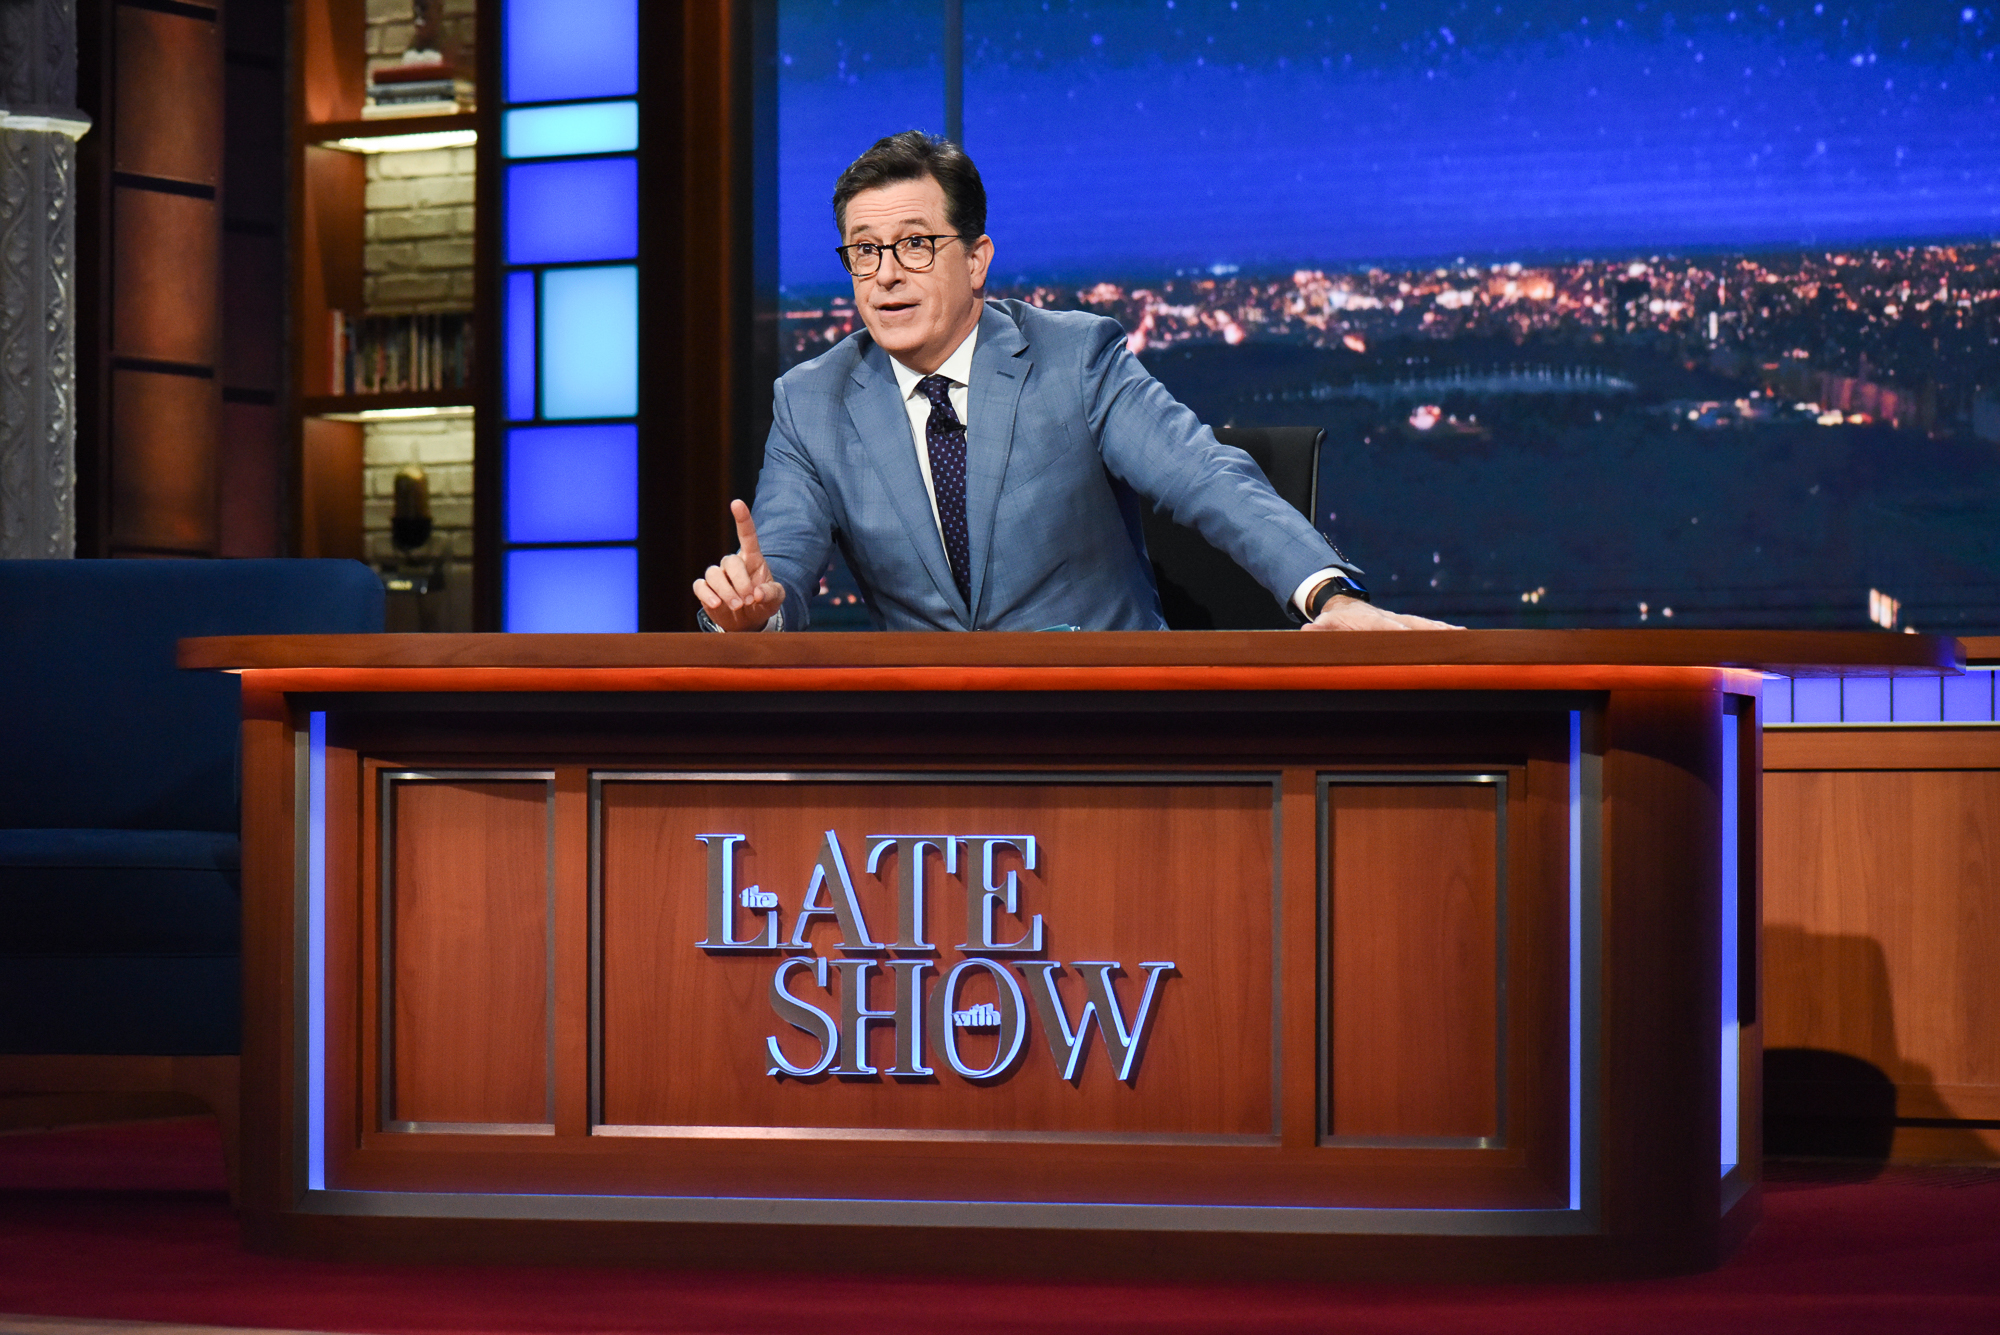 The Late Show with Stephen Colbert during Monday's June 26, 2017 show.